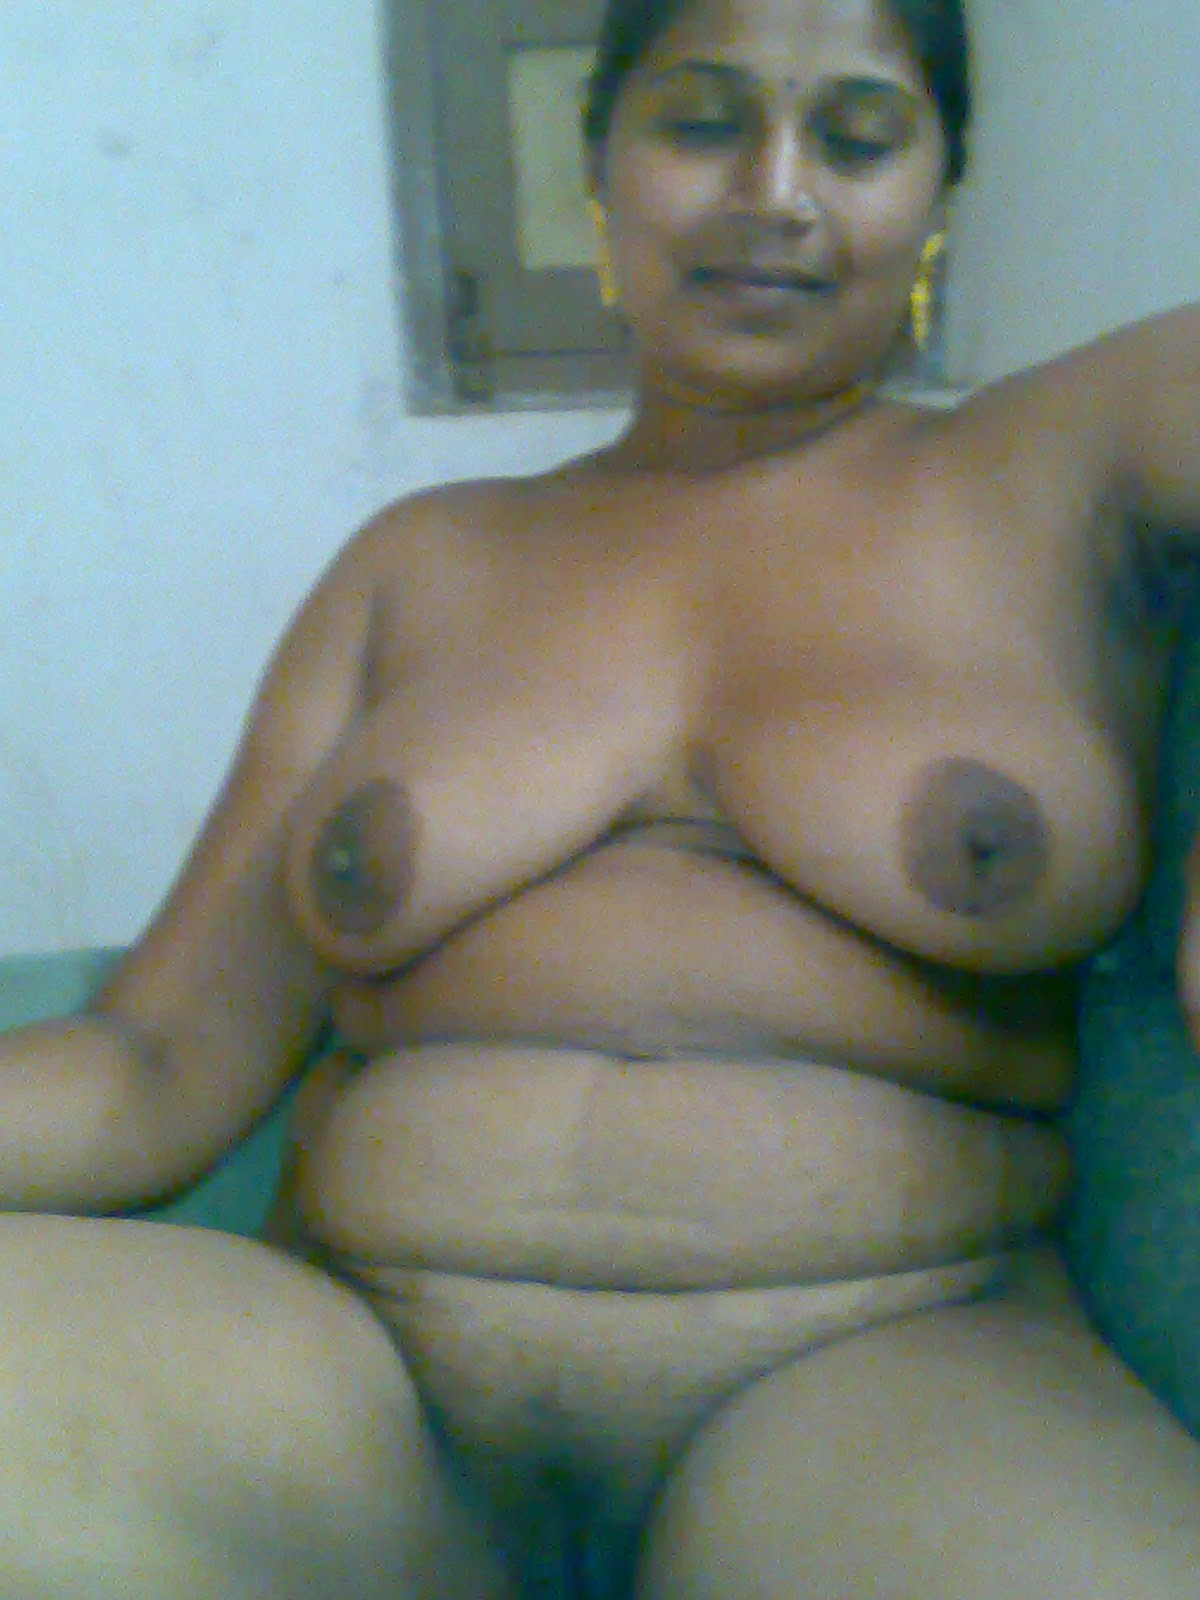 Kerla fat aunty full nude